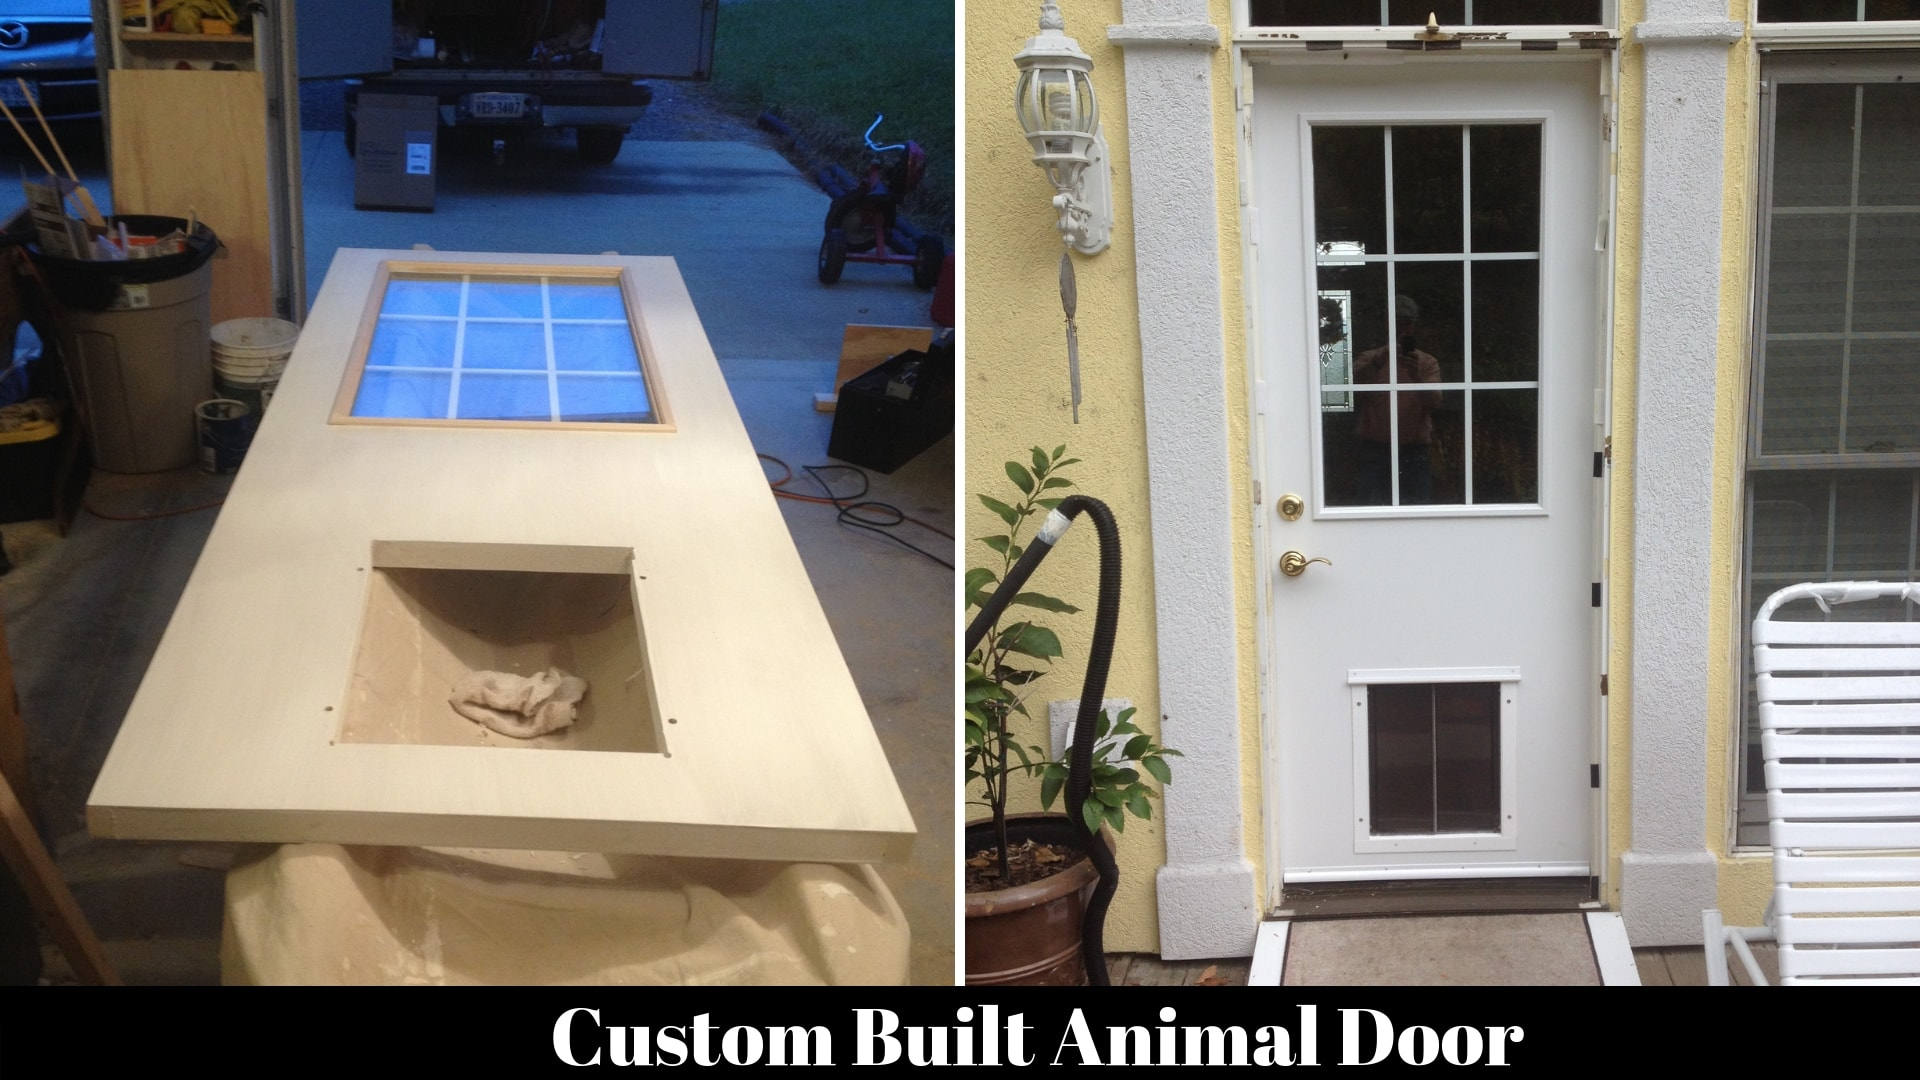 Custom Built Animal Door-min.jpg